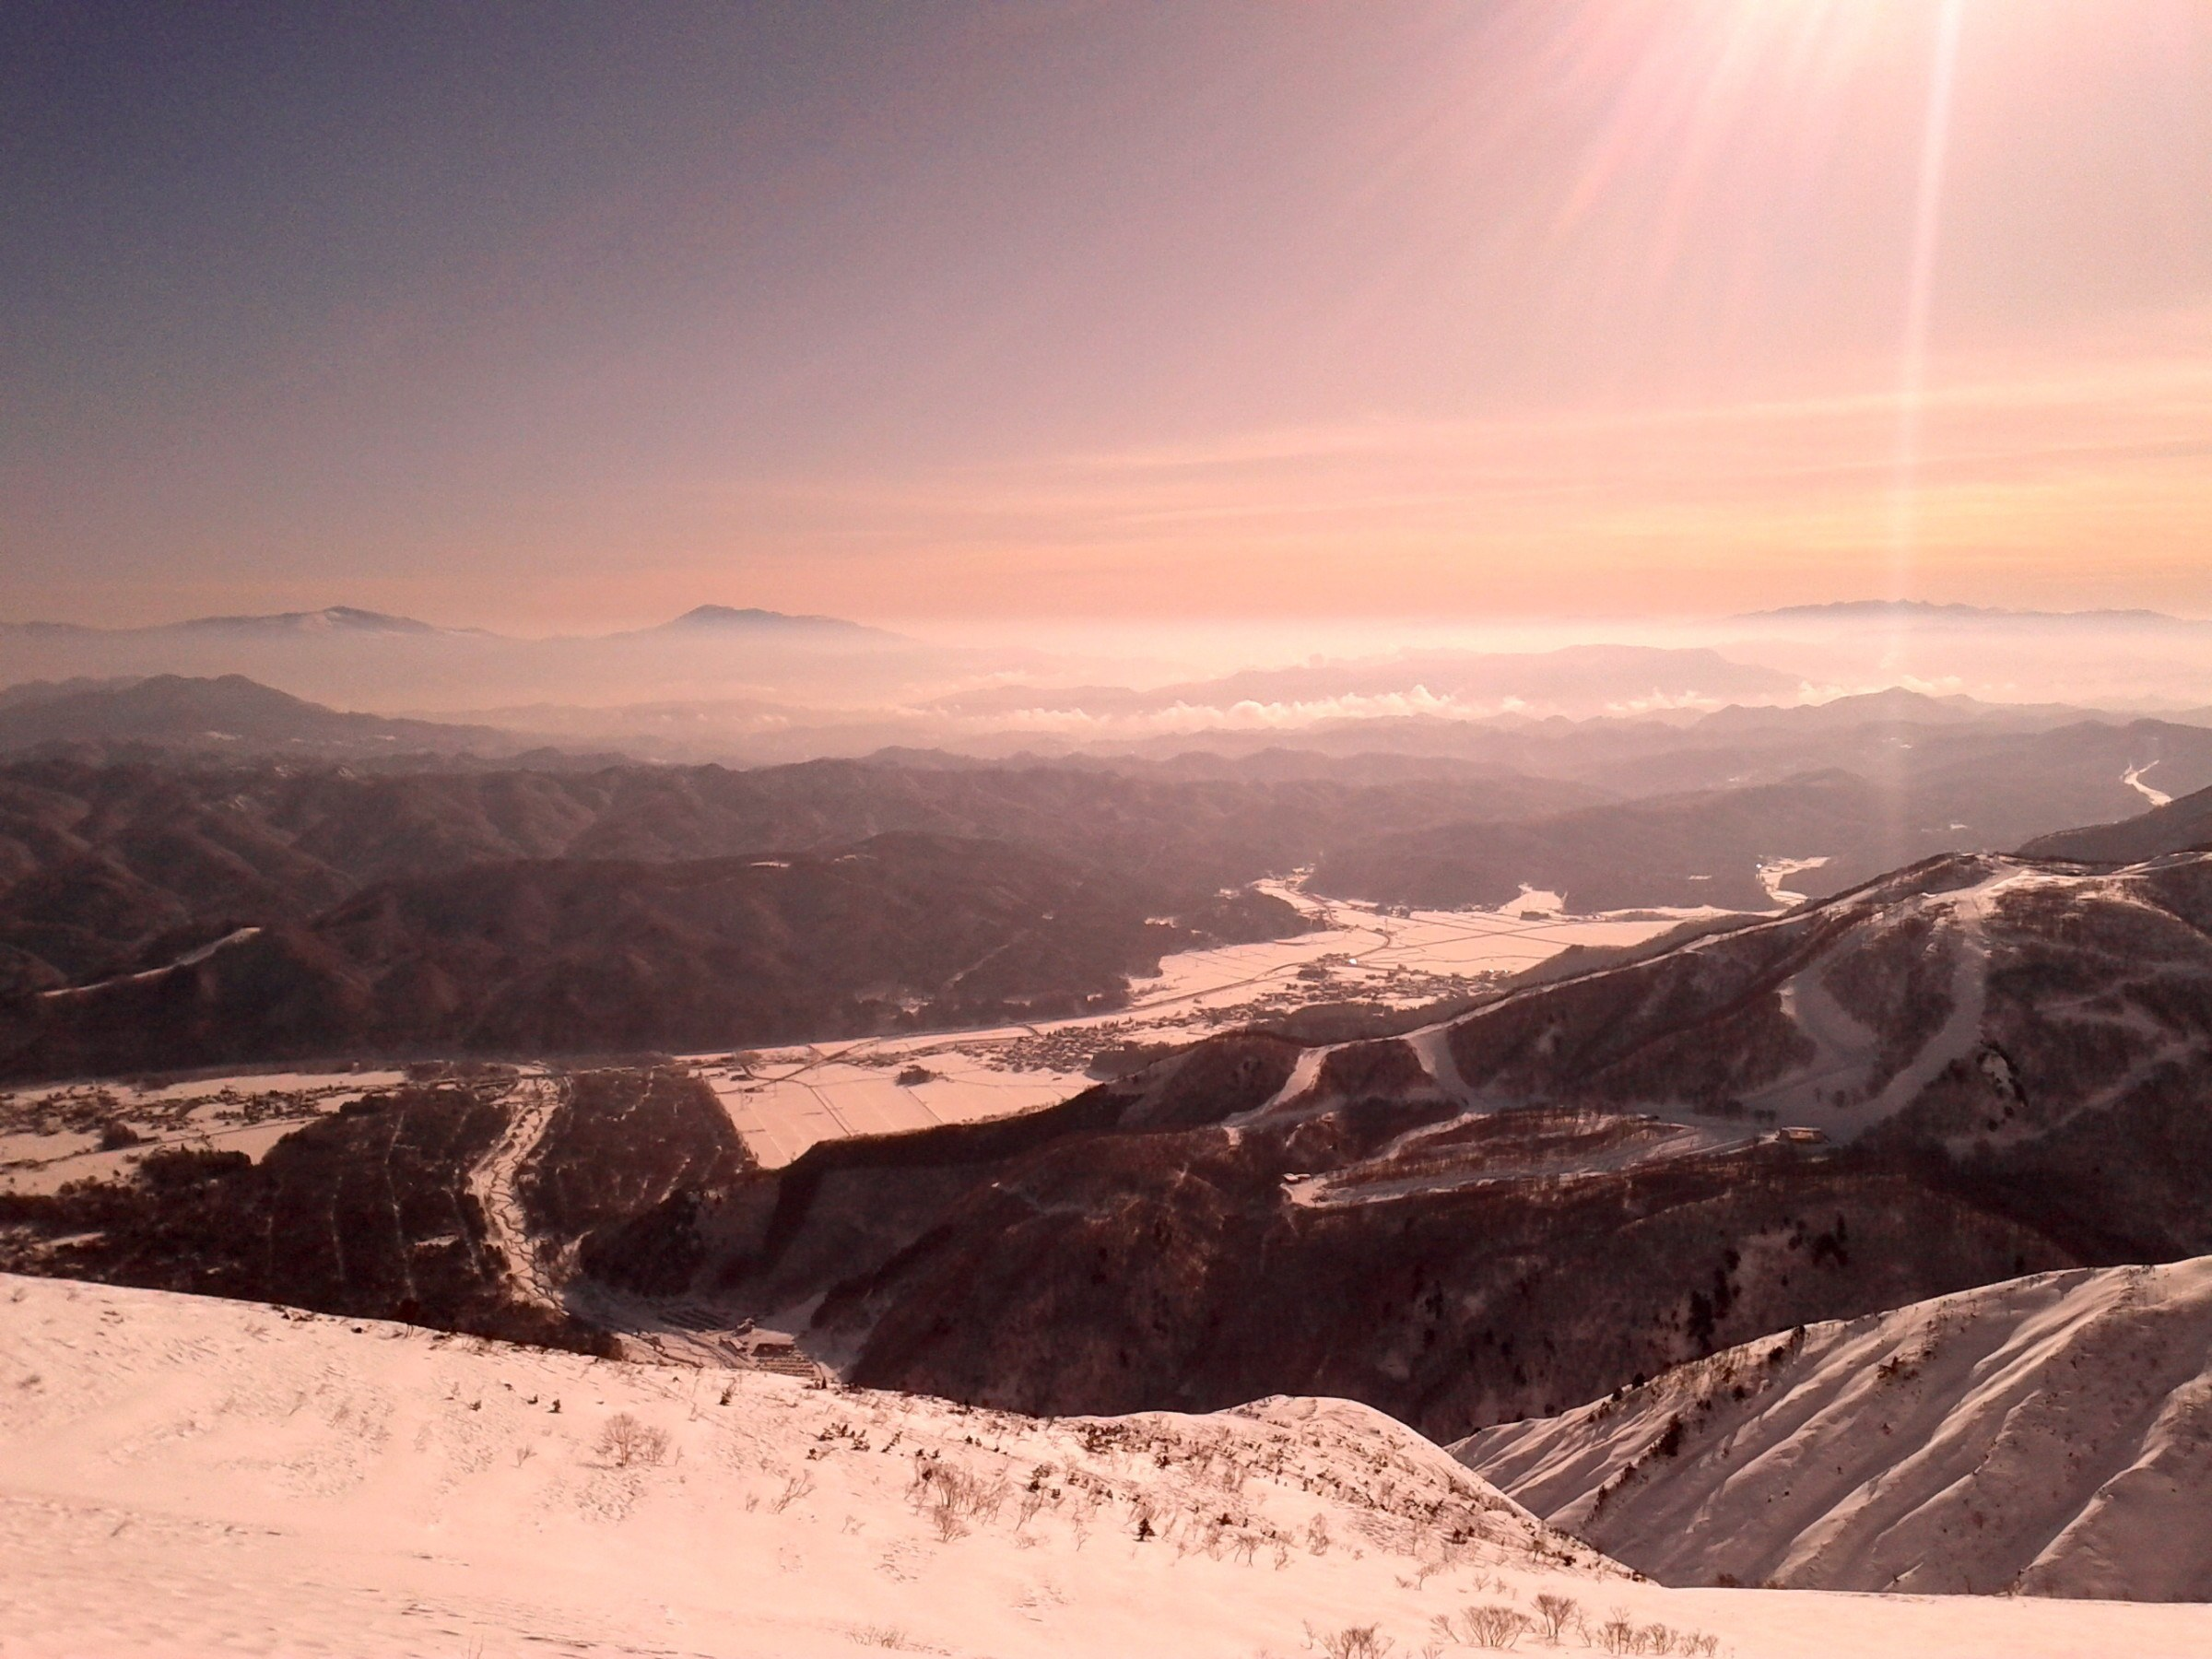 View over Hakuba, one of the locations for the 1998 Winter Olympics